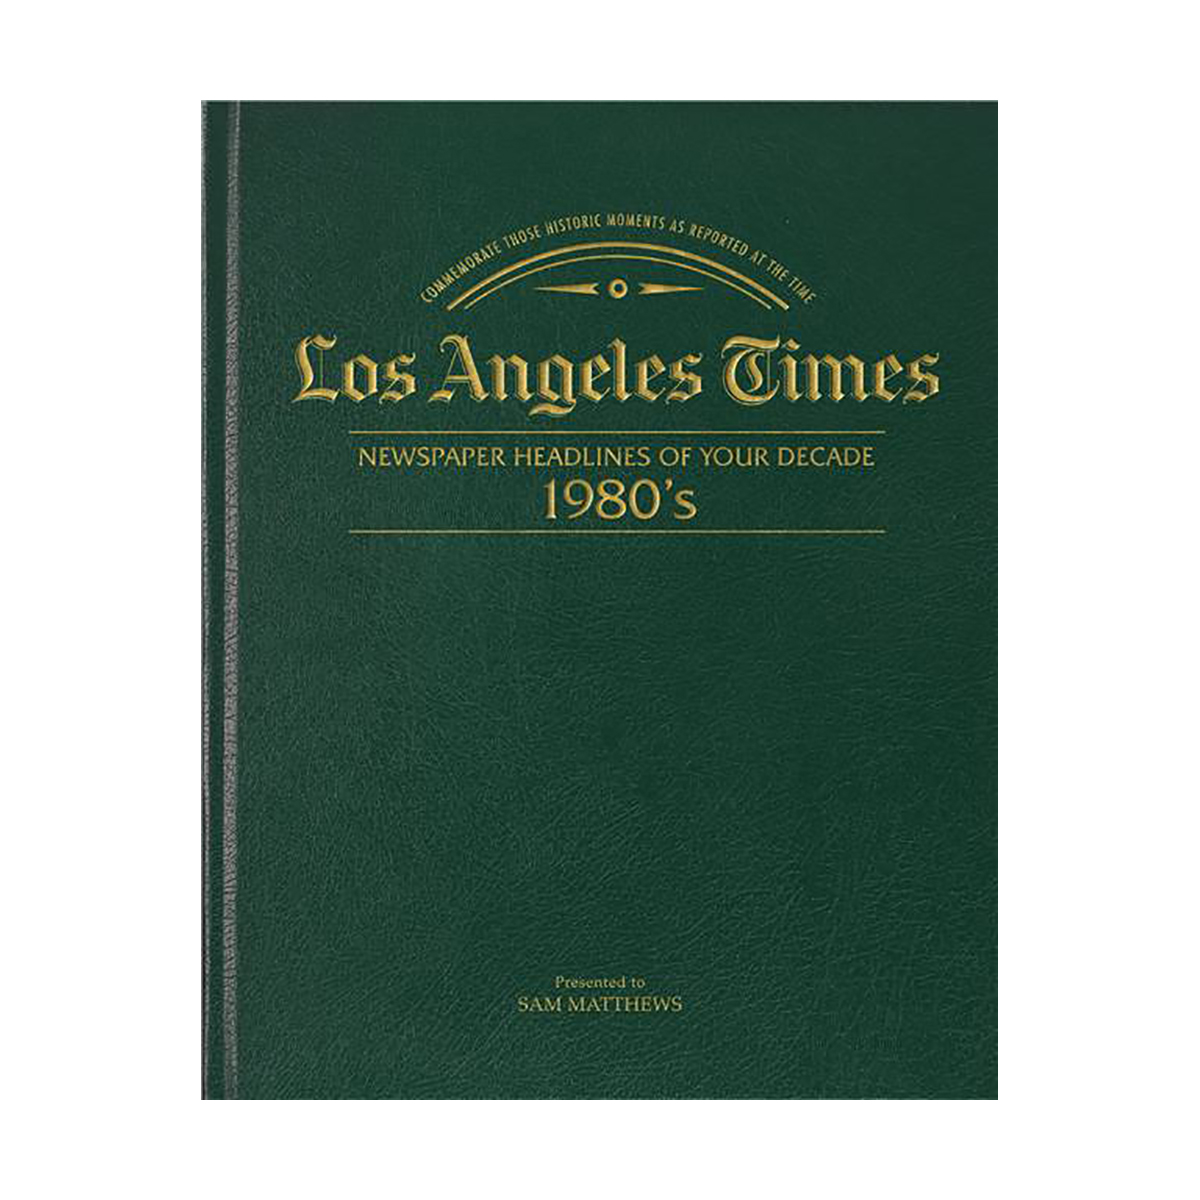 Los Angeles Times 80's Decade Book